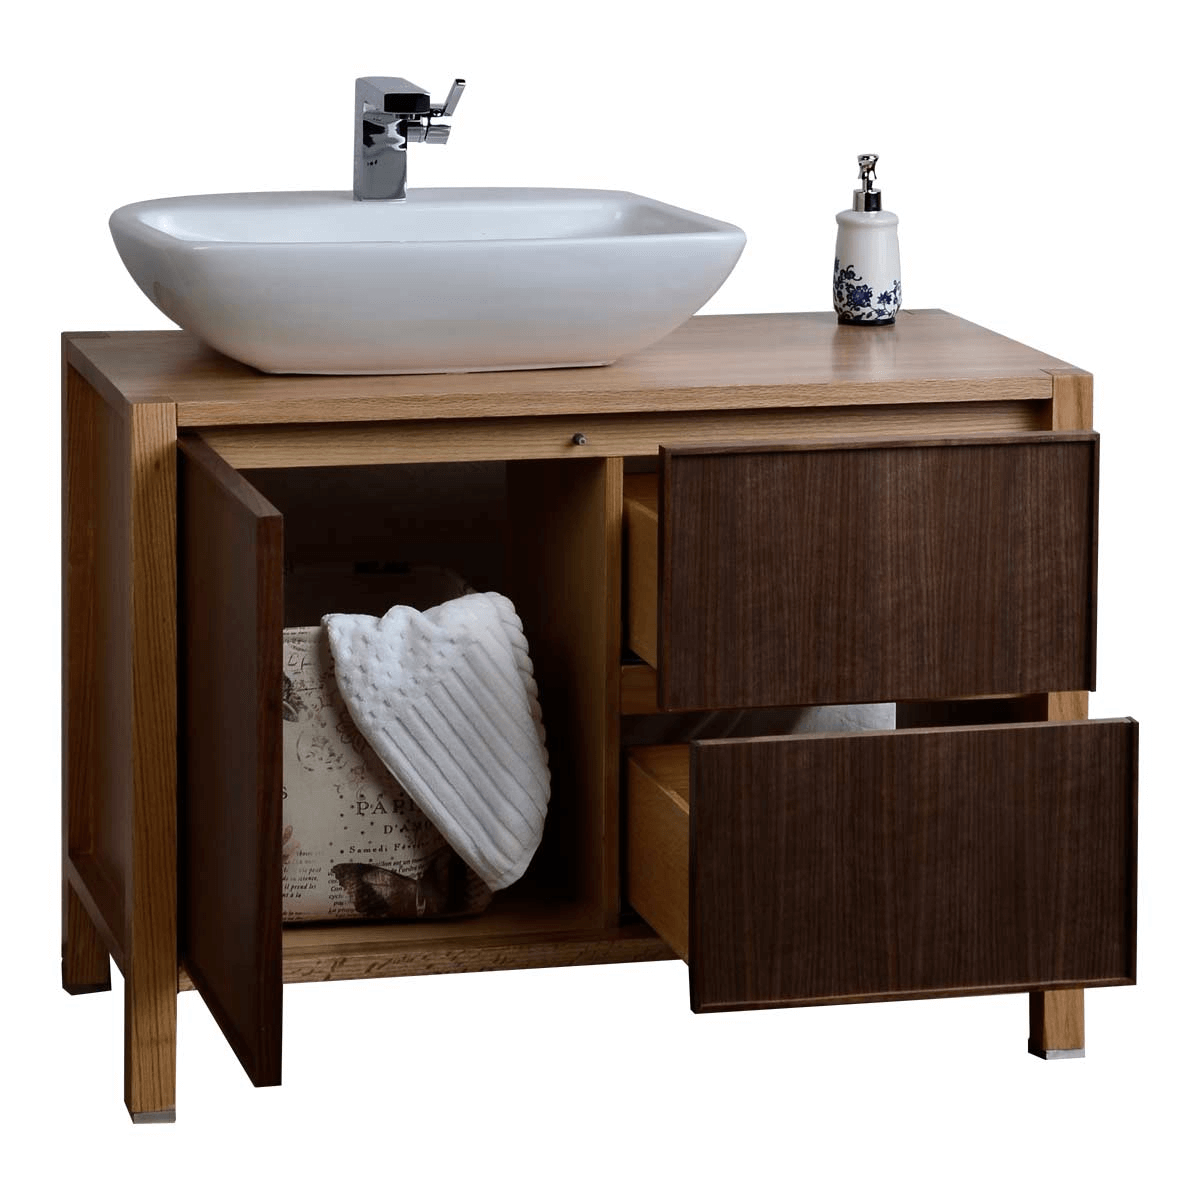 Decorating Small Spaces On A Budget Buying Tips On Bathroom Vanity With Sink On Left Side